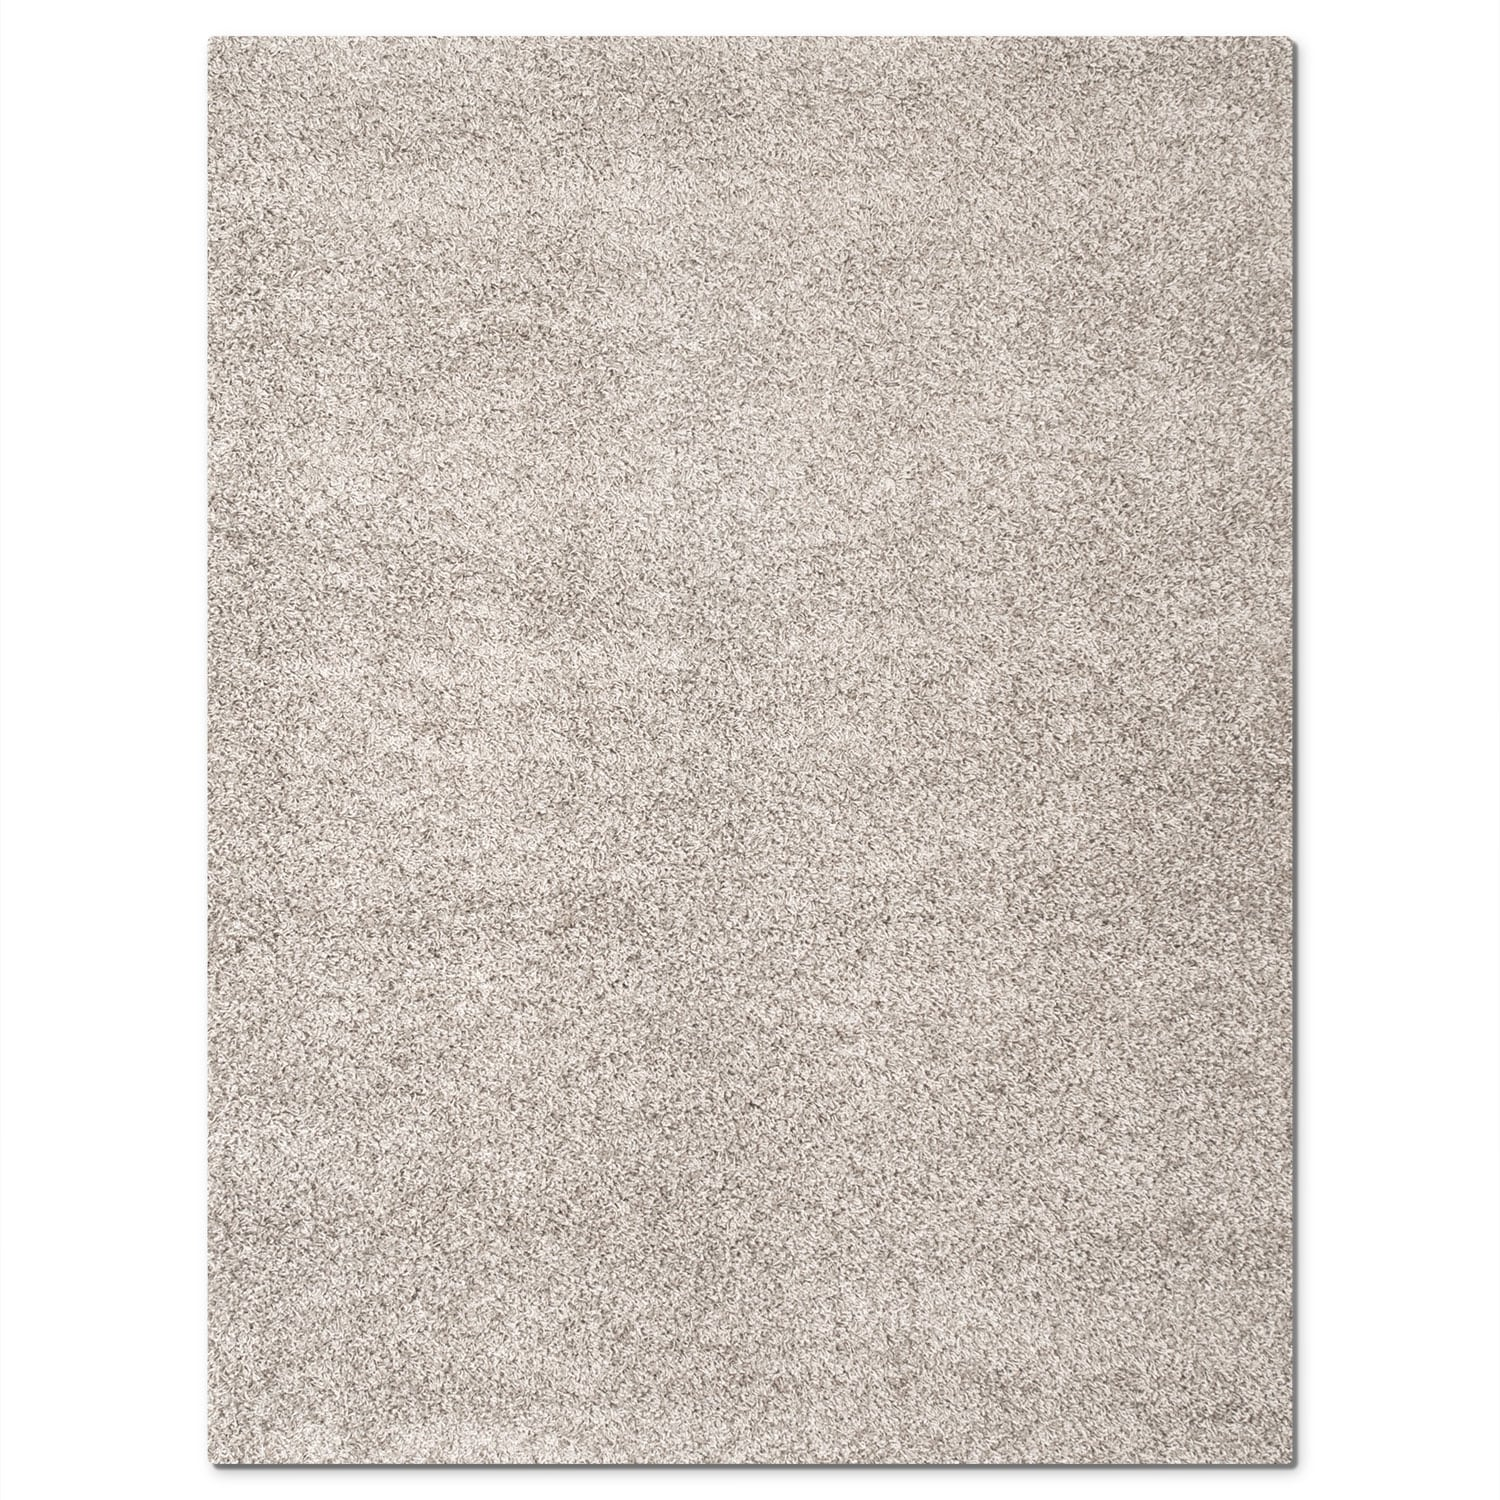 Domino gray shag area rug 8 39 x 10 39 value city furniture for Living room rugs 8 by 10